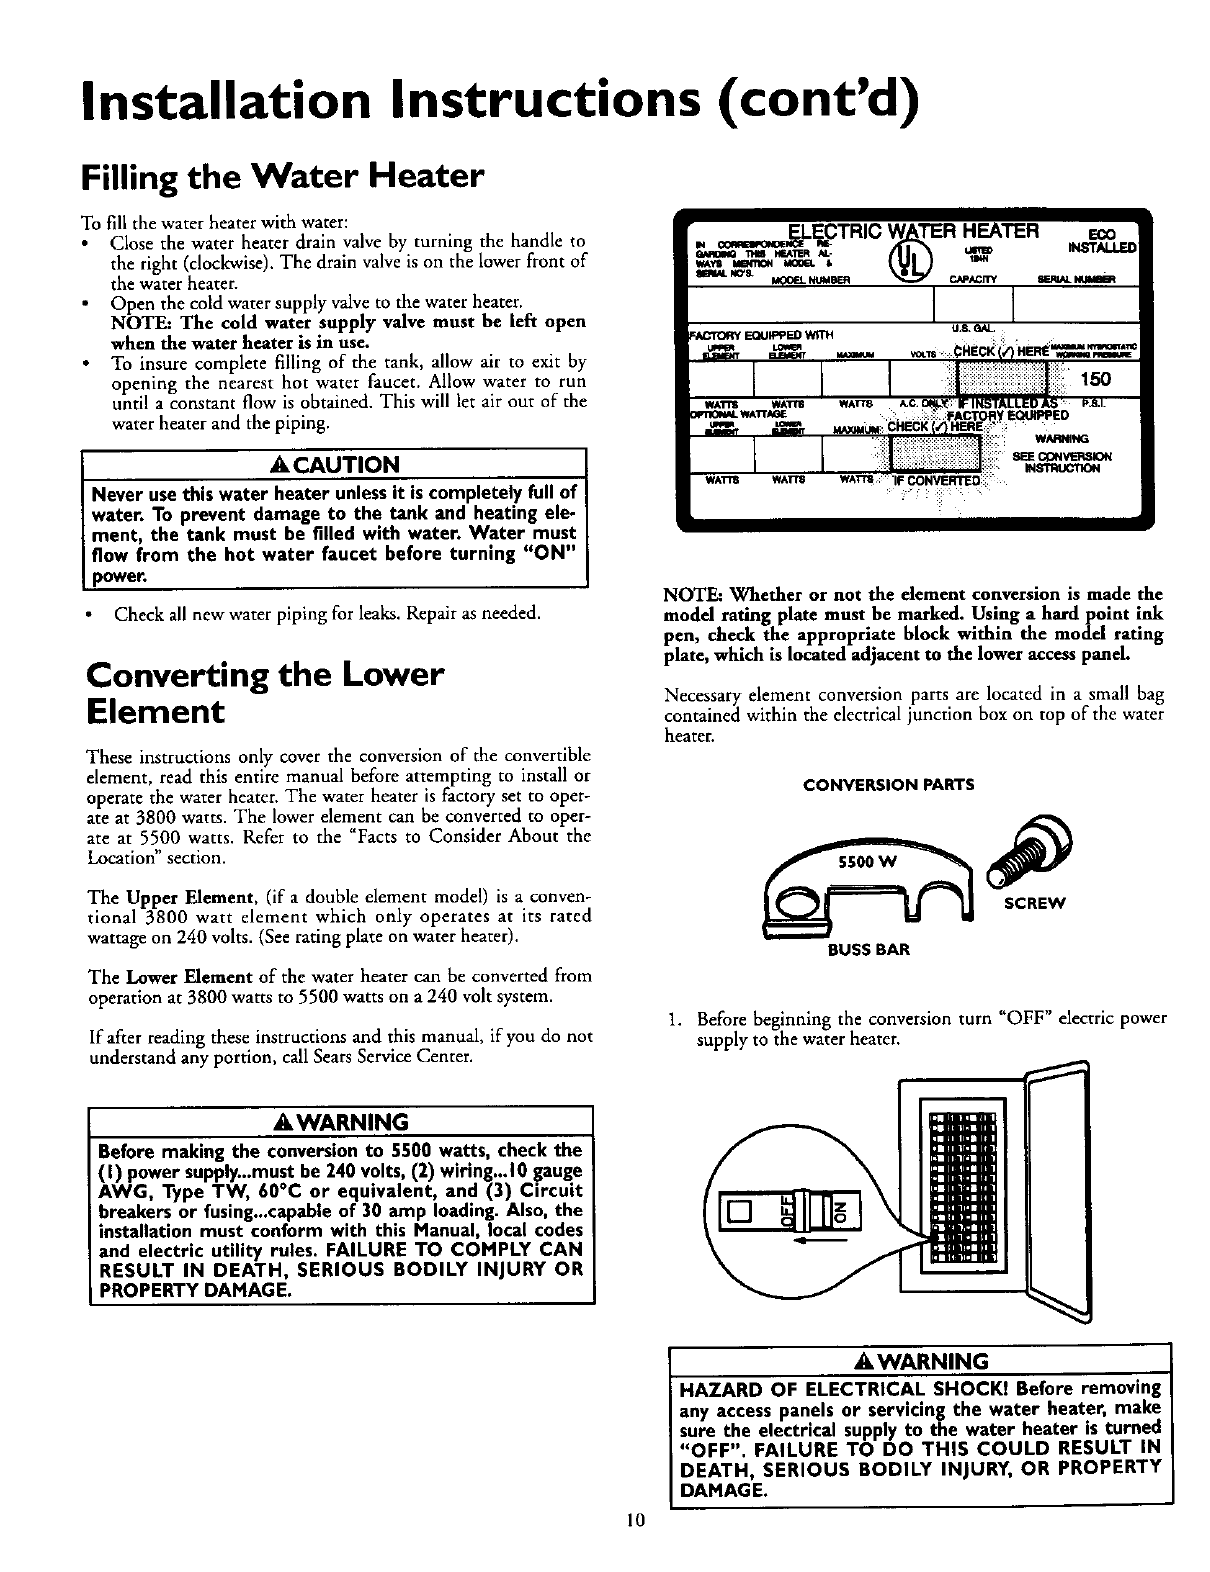 Kenmore 153316152 153316153 153316252 153316253 153316354 Electric Water Heater Wiring Diagram Installation Instructions Contd Filling The